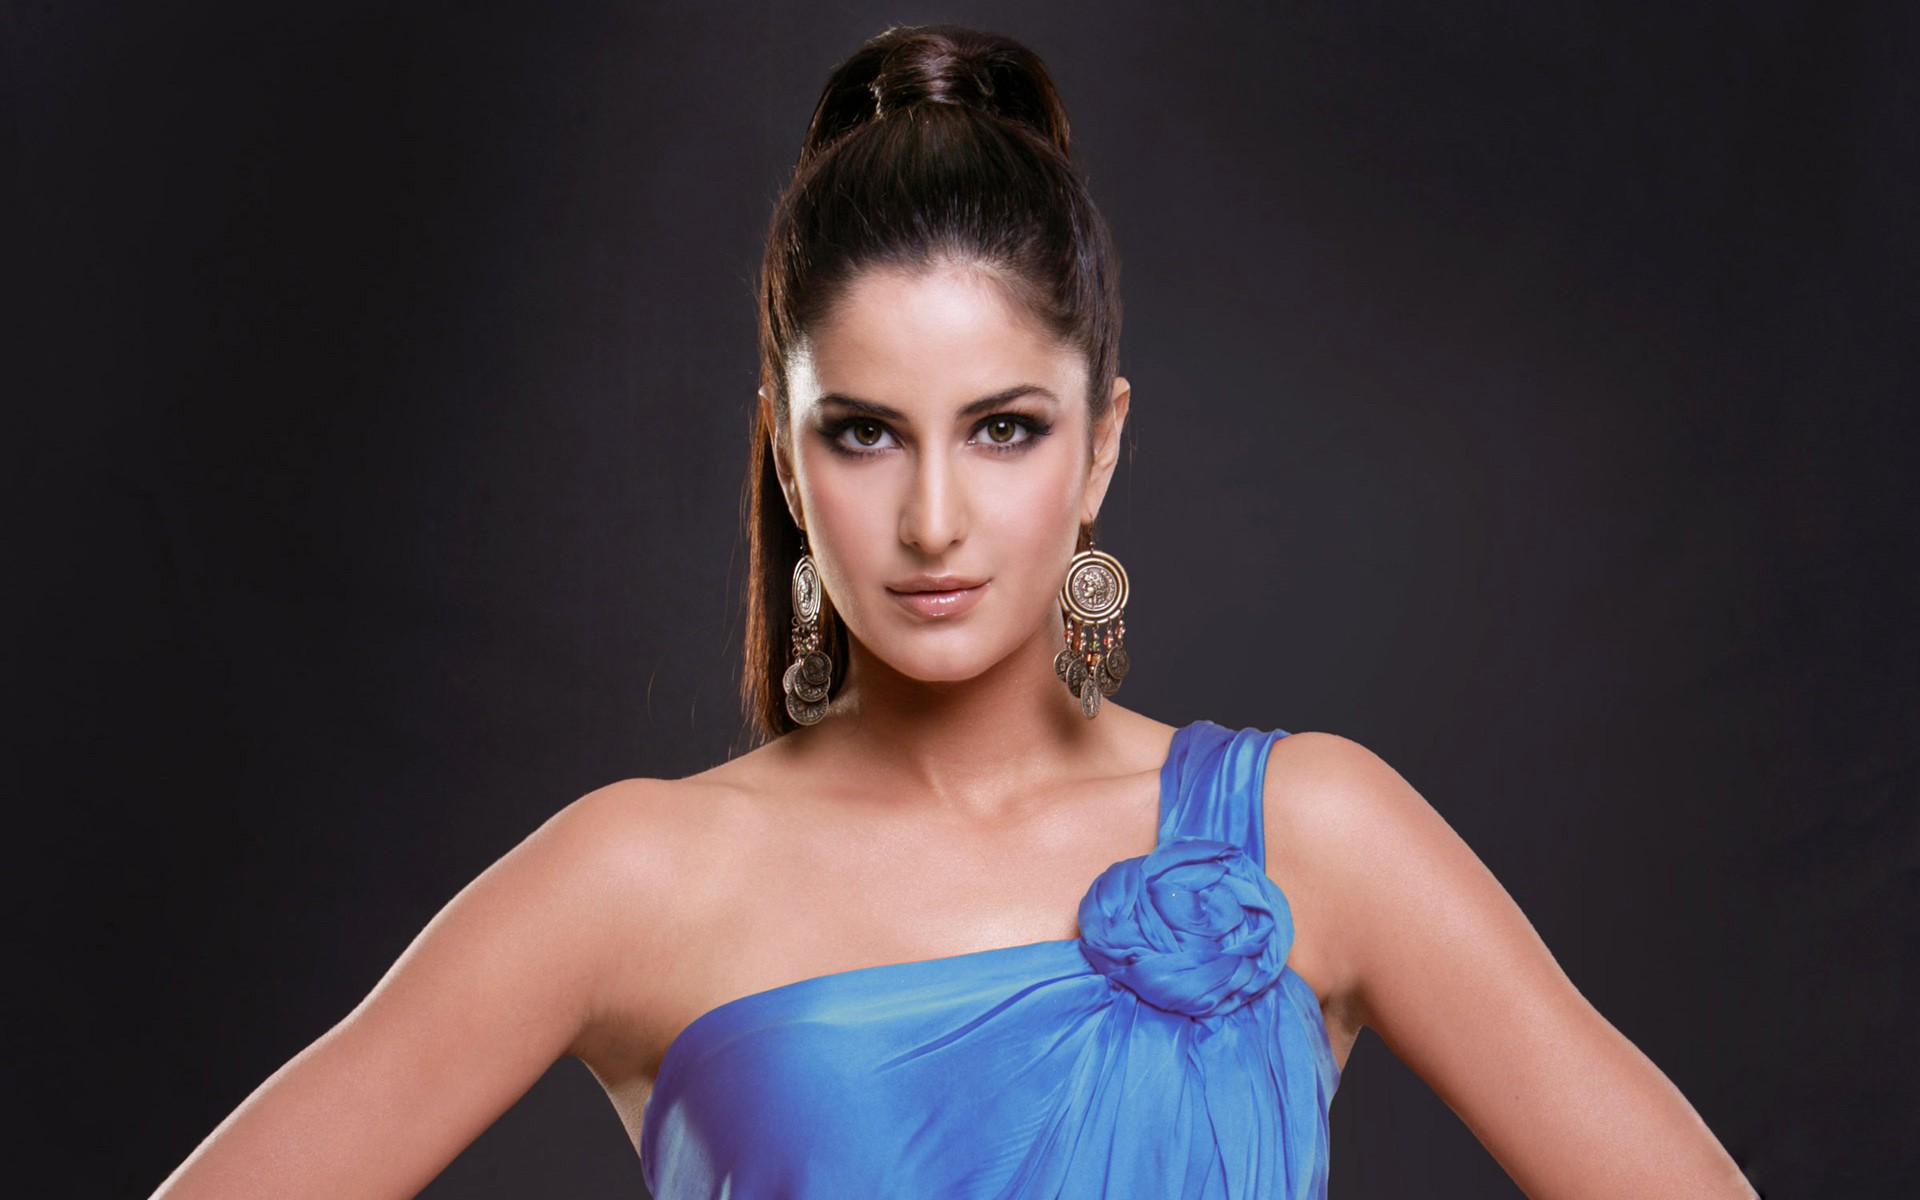 katrina-kaif-2016-wallpapers-hot